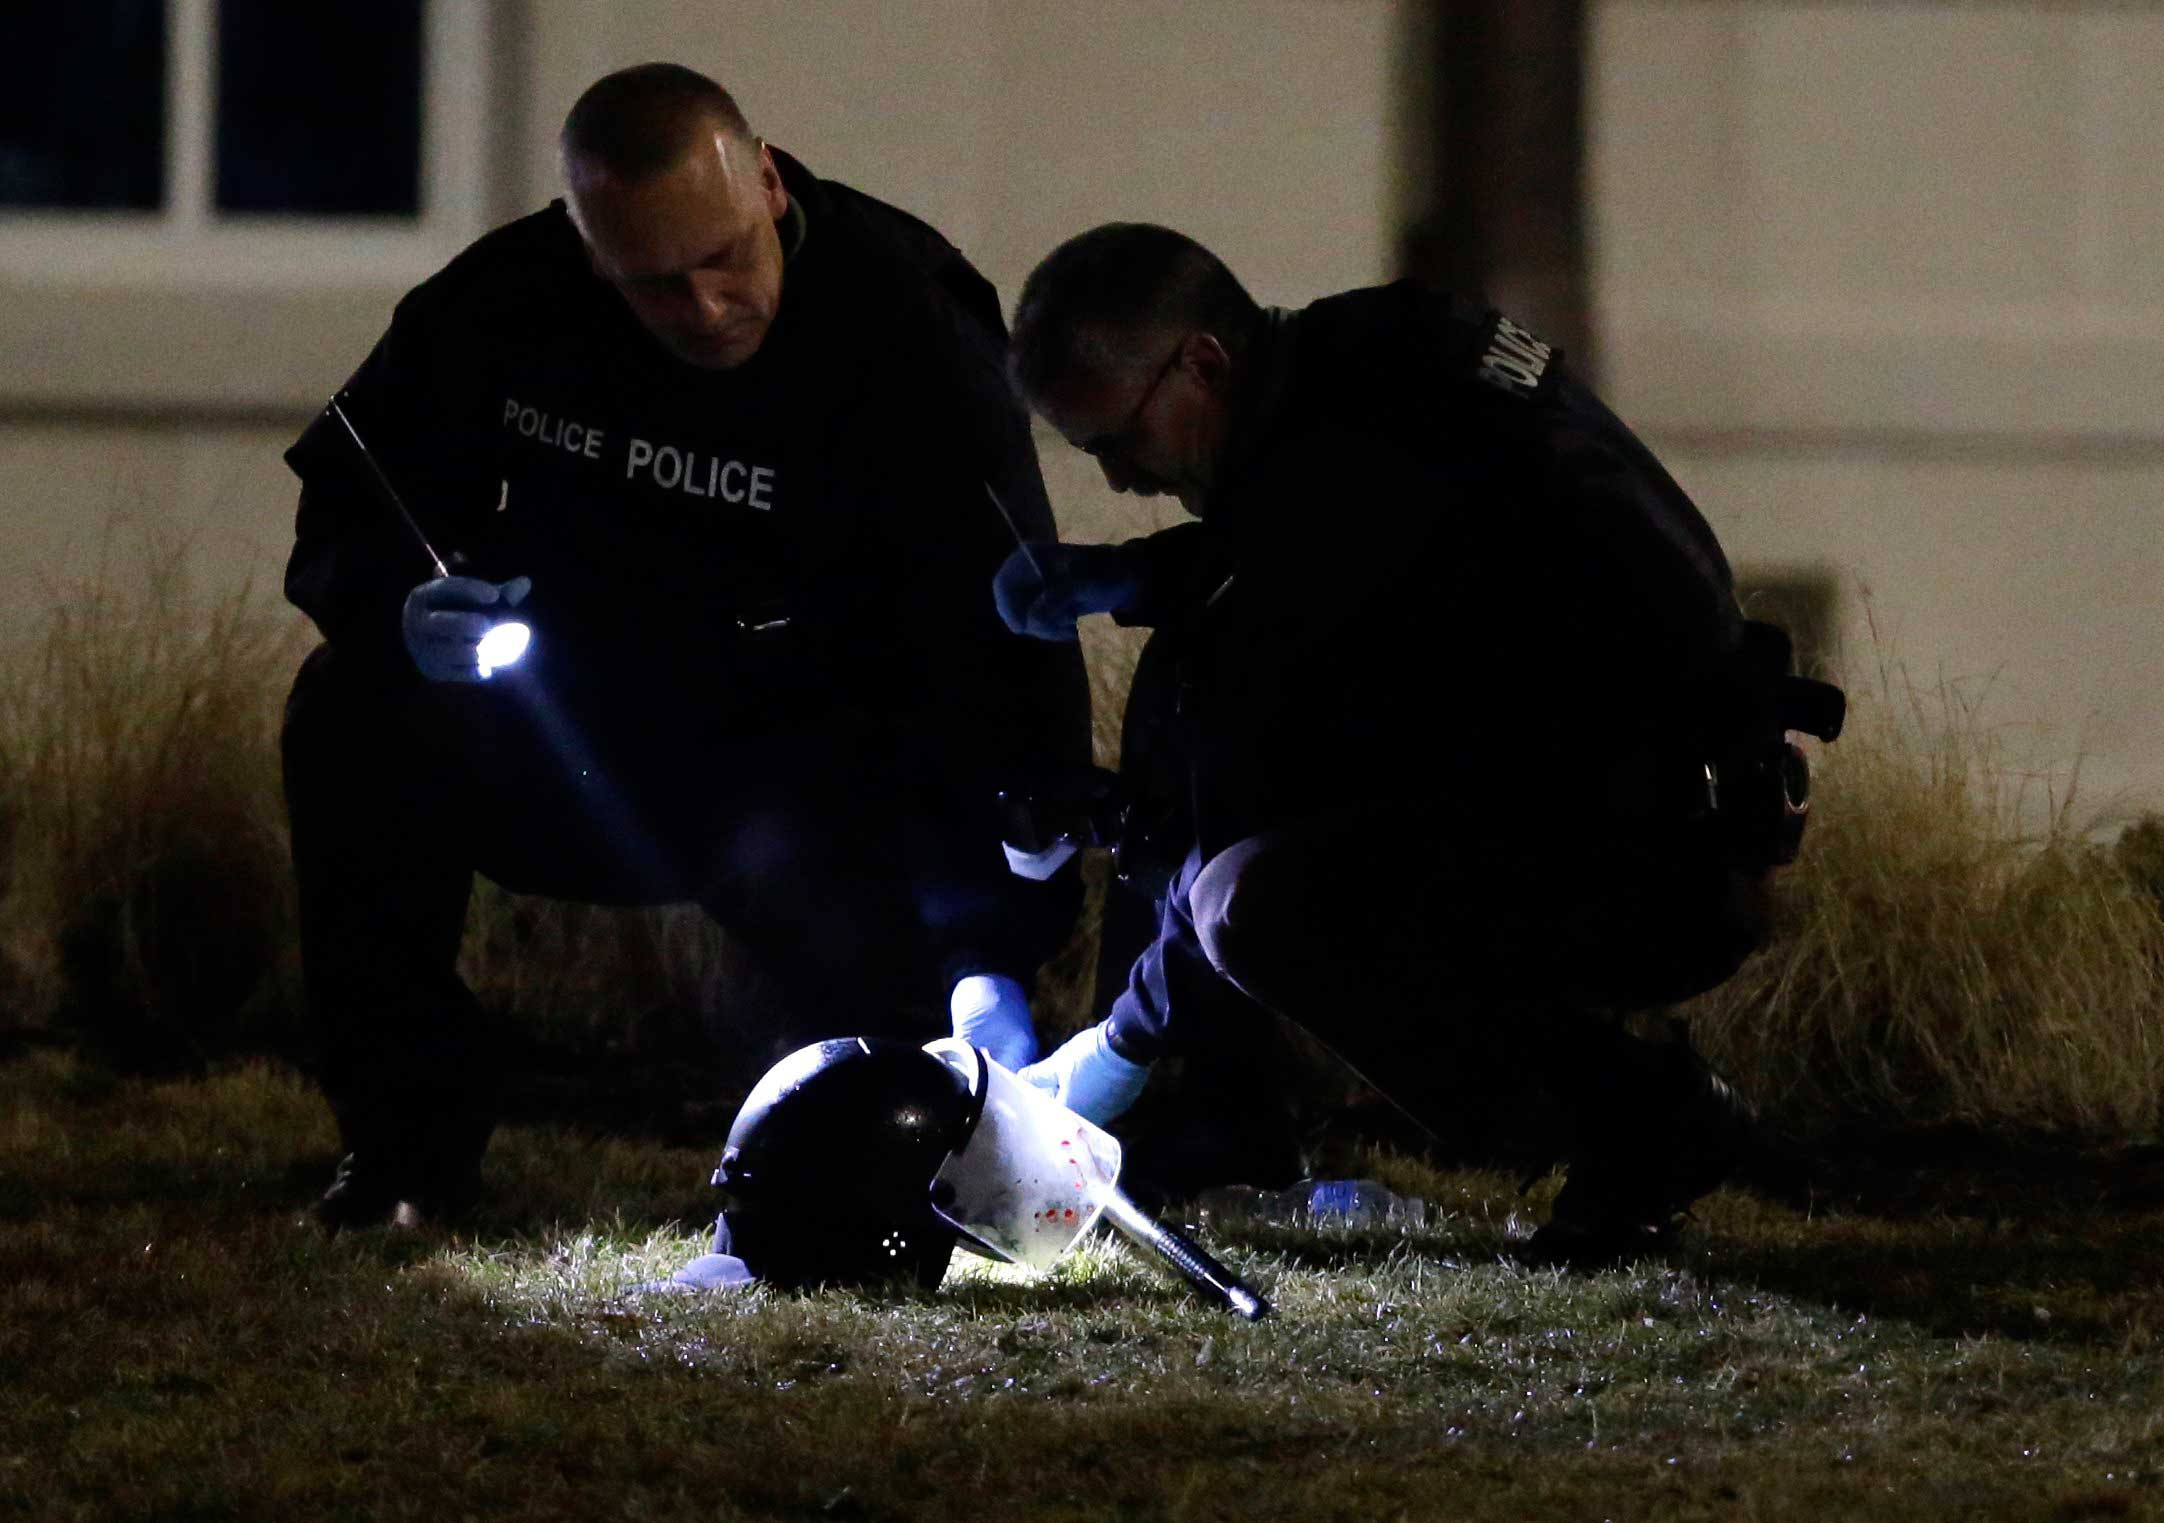 Police shine a light on a helmet as they investigate the scene where two police officers were shot outside the Ferguson Police Department Thursday, March 12, 2015, in Ferguson, Mo.